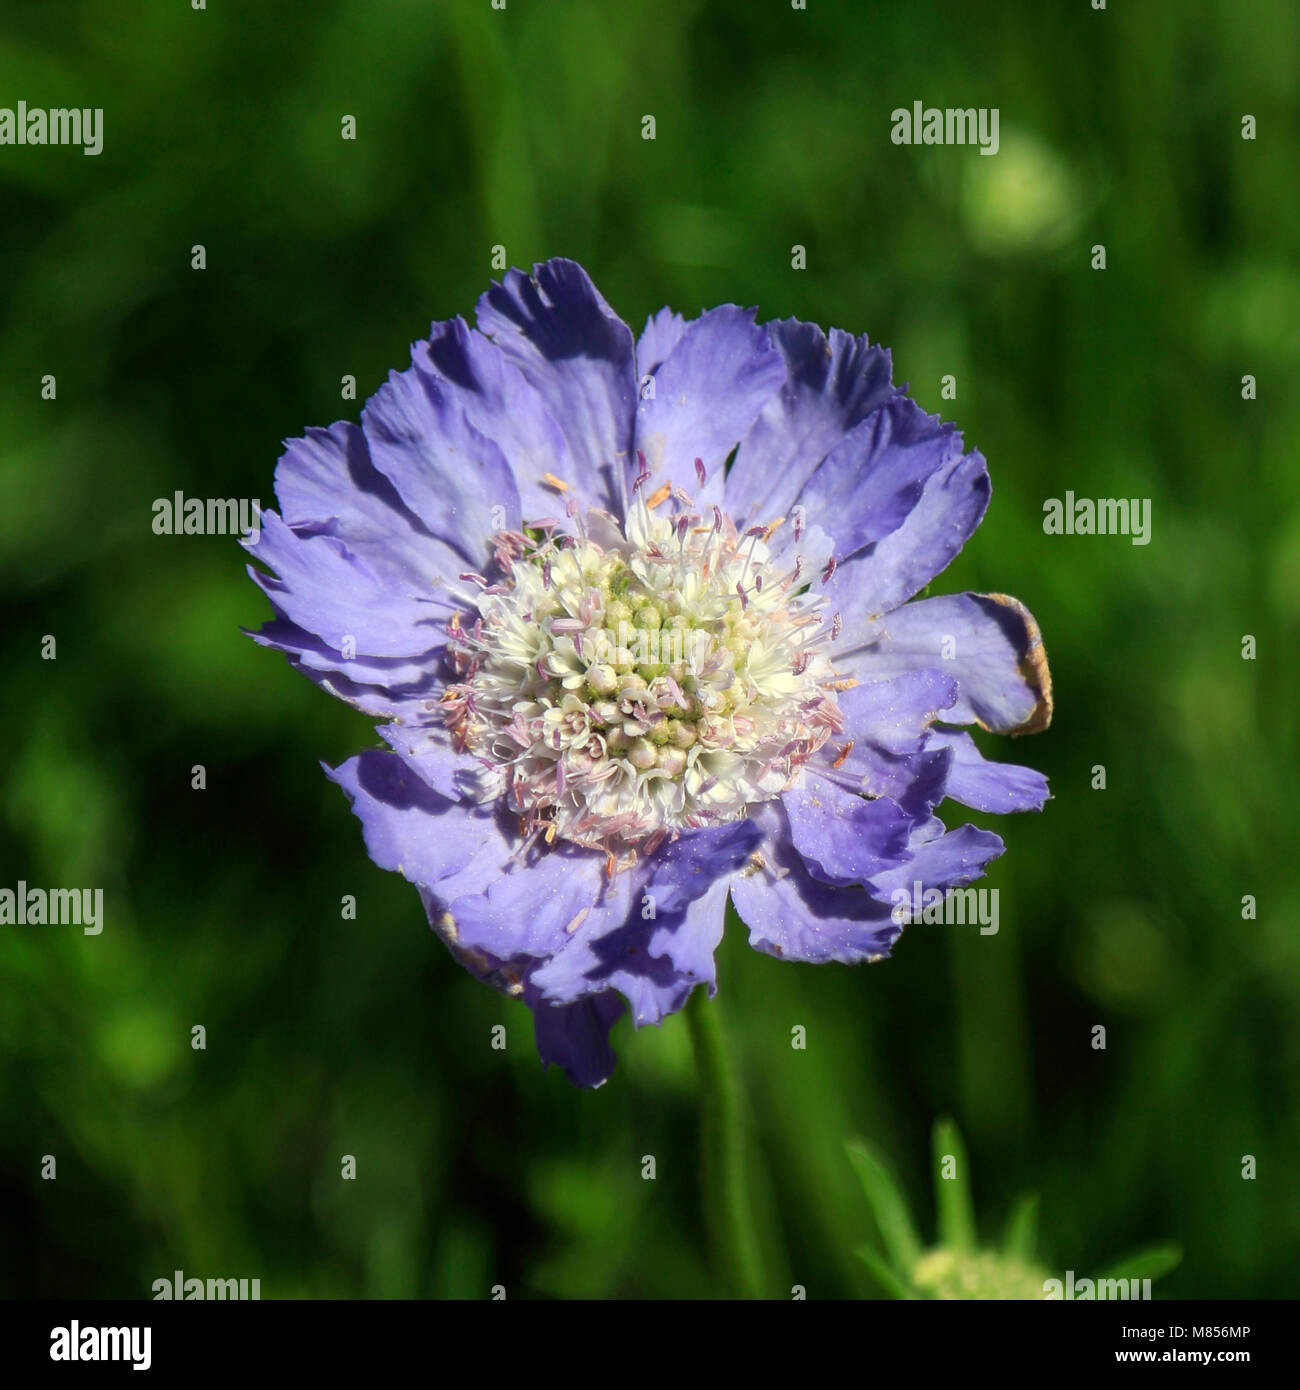 Scabiosa Caucasica Isaac House single flower with shallow depth of field - Stock Image